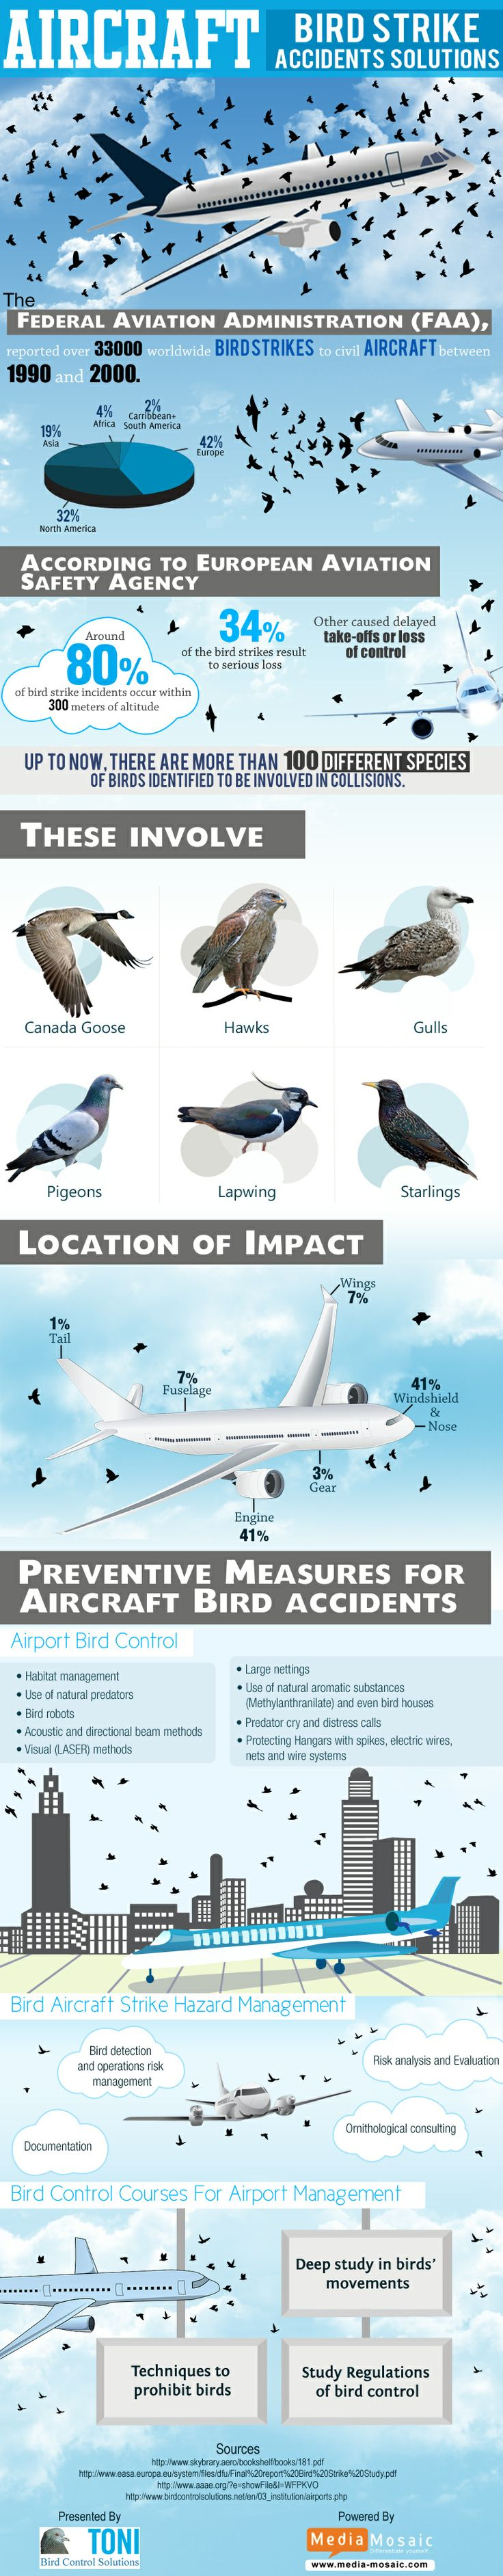 "The infographic titled ""Aircraft-Bird Strike Accidents Solutions"" has been created with the big idea of guiding people about how bird strikes harm aircraft. This infographic will be useful for them to know about various solutions to control the aircraft bird strikes. More details http://www.birdcontrolsolutions.net/en/service/blog/2014/06/aircraft-bird-strike-accidents-solutions.php"